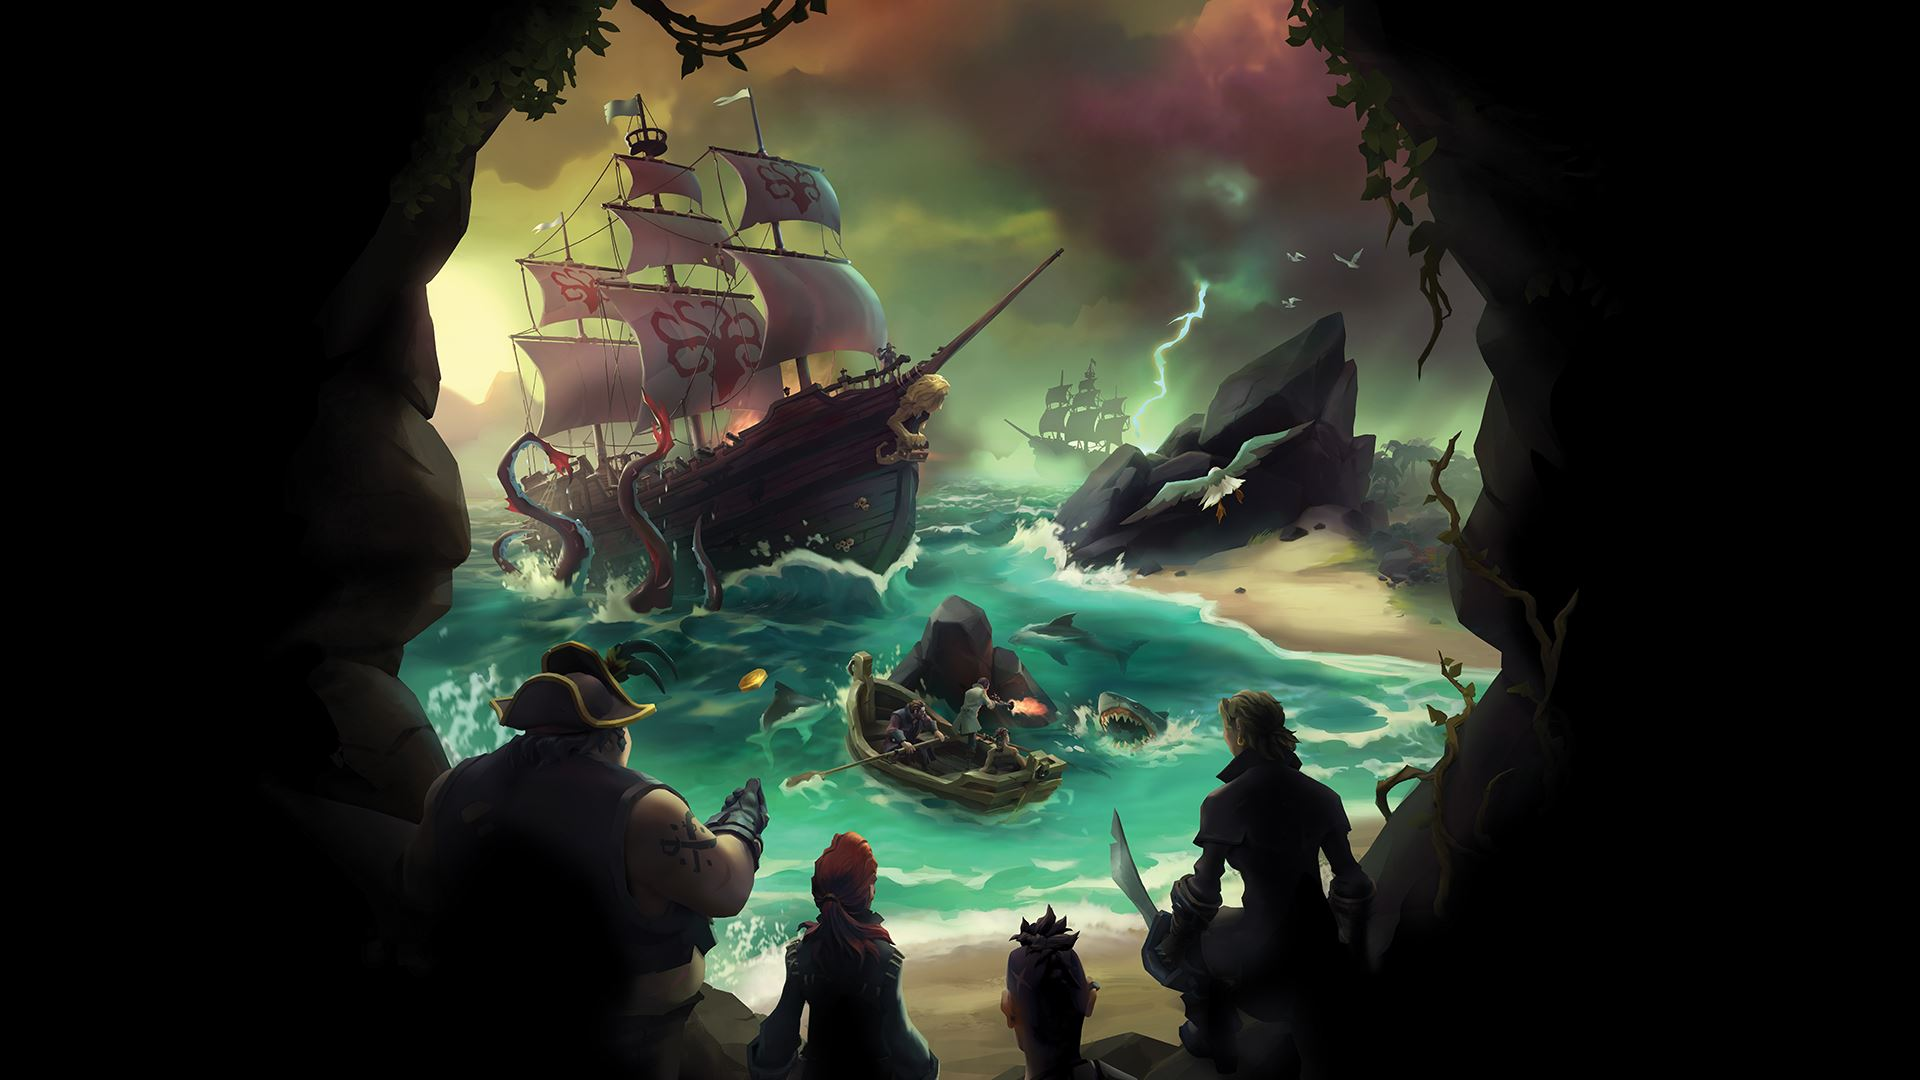 Sea of Thieves Promotional Art